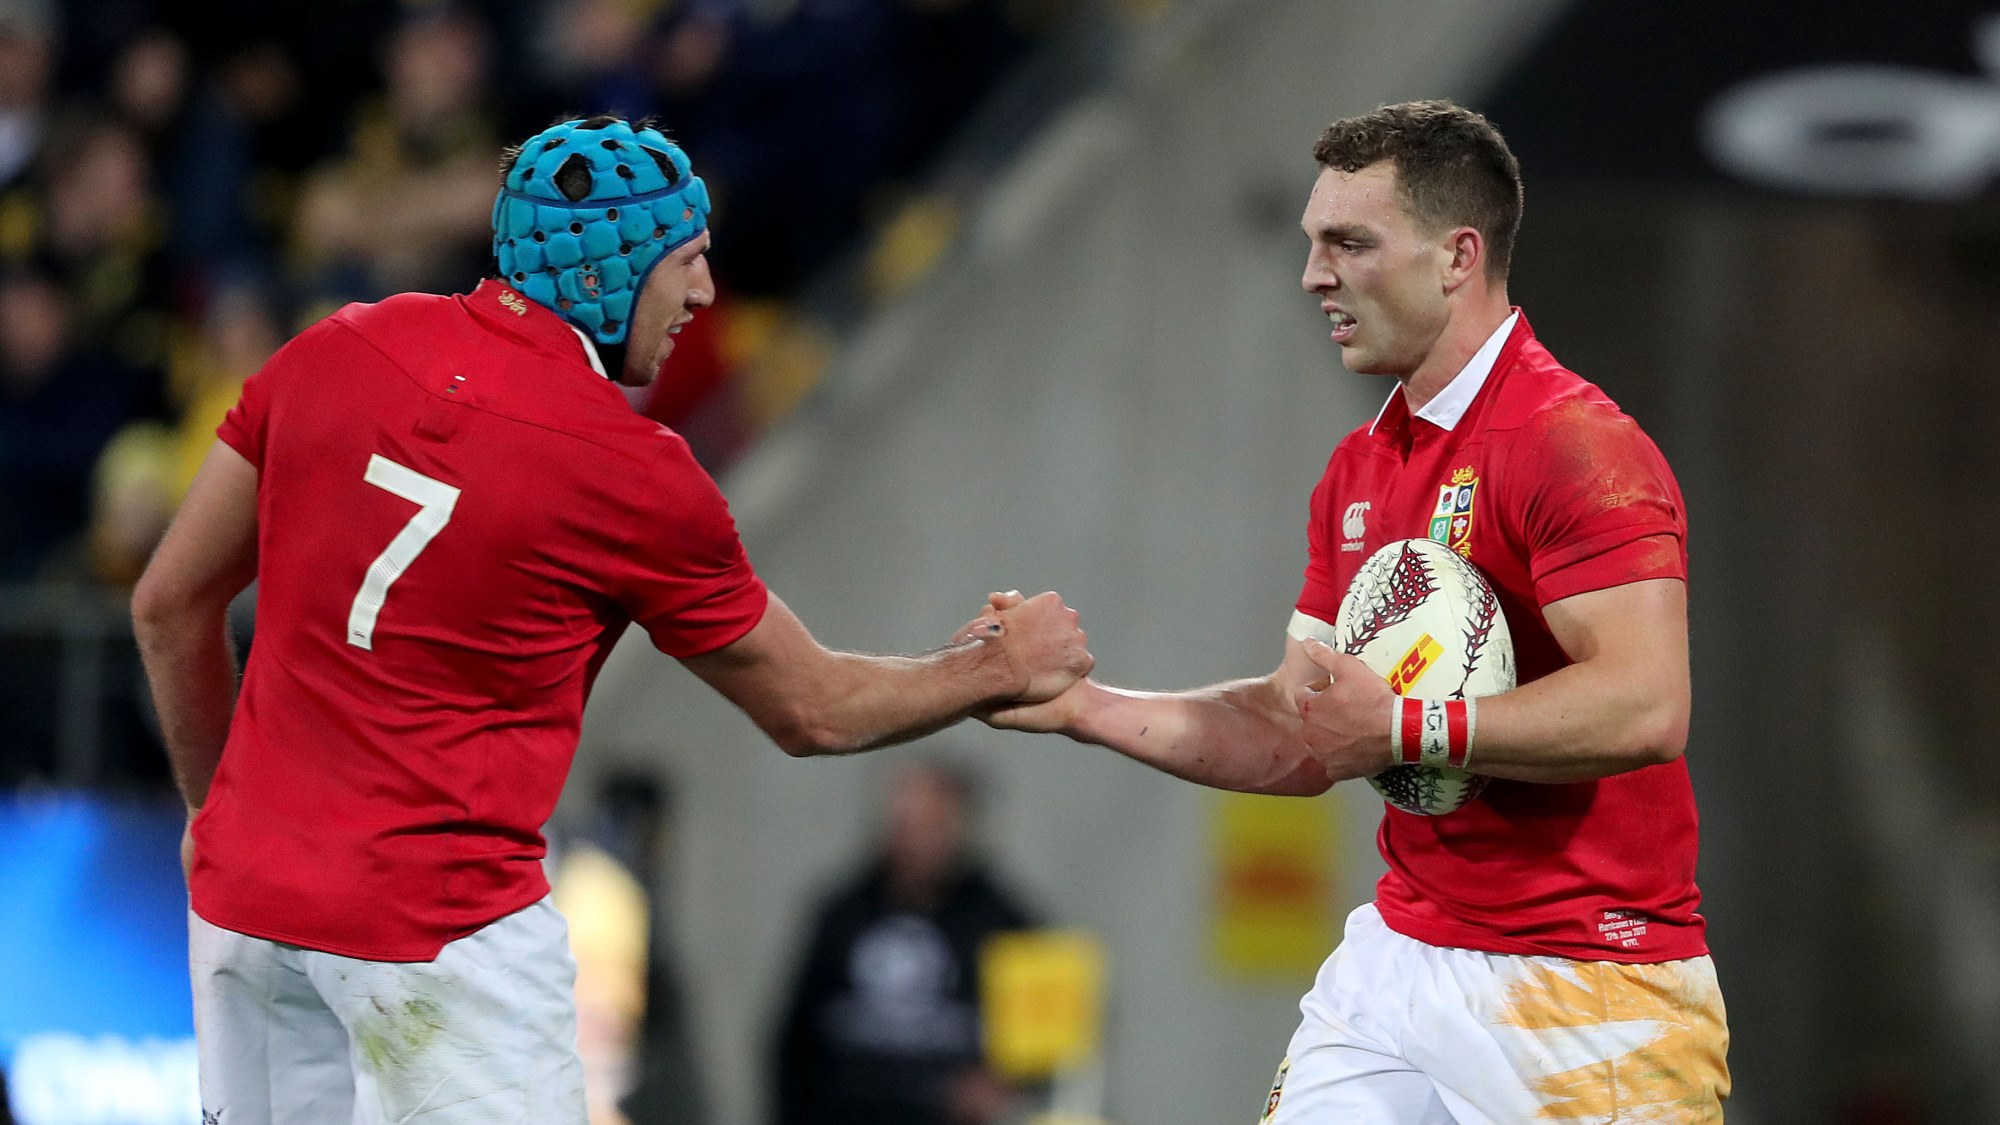 Gatland impressed by attitude of players ahead of second Test